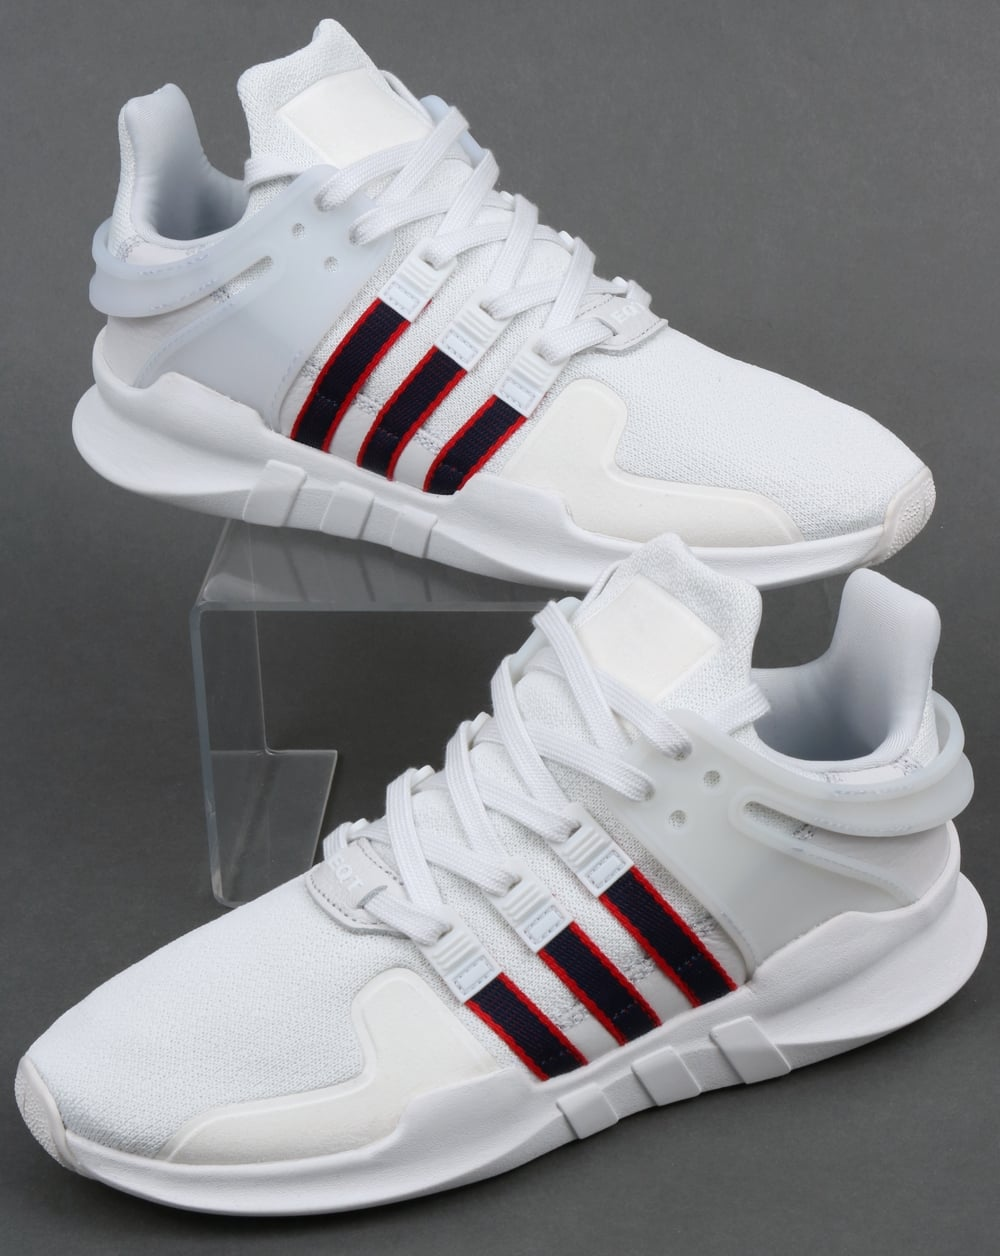 super popular e05a4 33aa1 adidas Trainers Adidas EQT Support ADV Trainers Crystal White Navy Scarlet